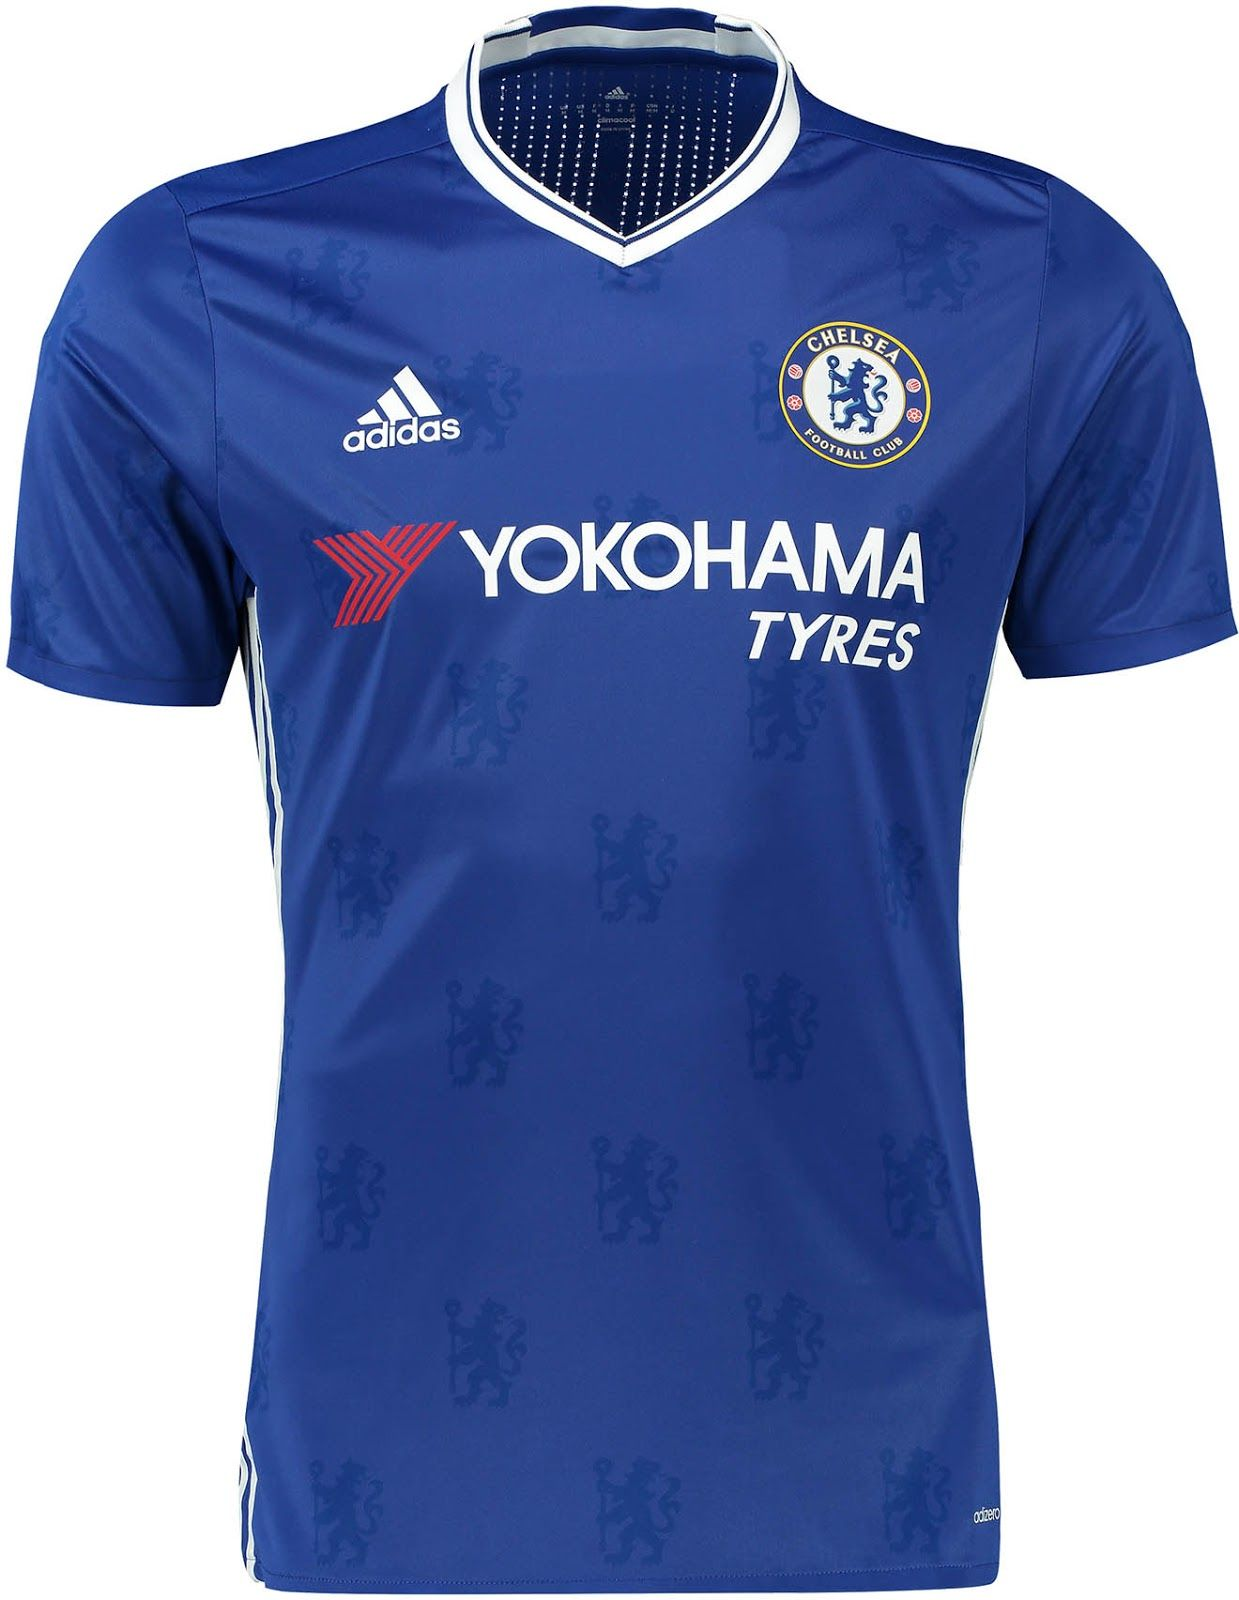 The Chelsea 2016-17 home kit features an all-over print of Chelsea lions